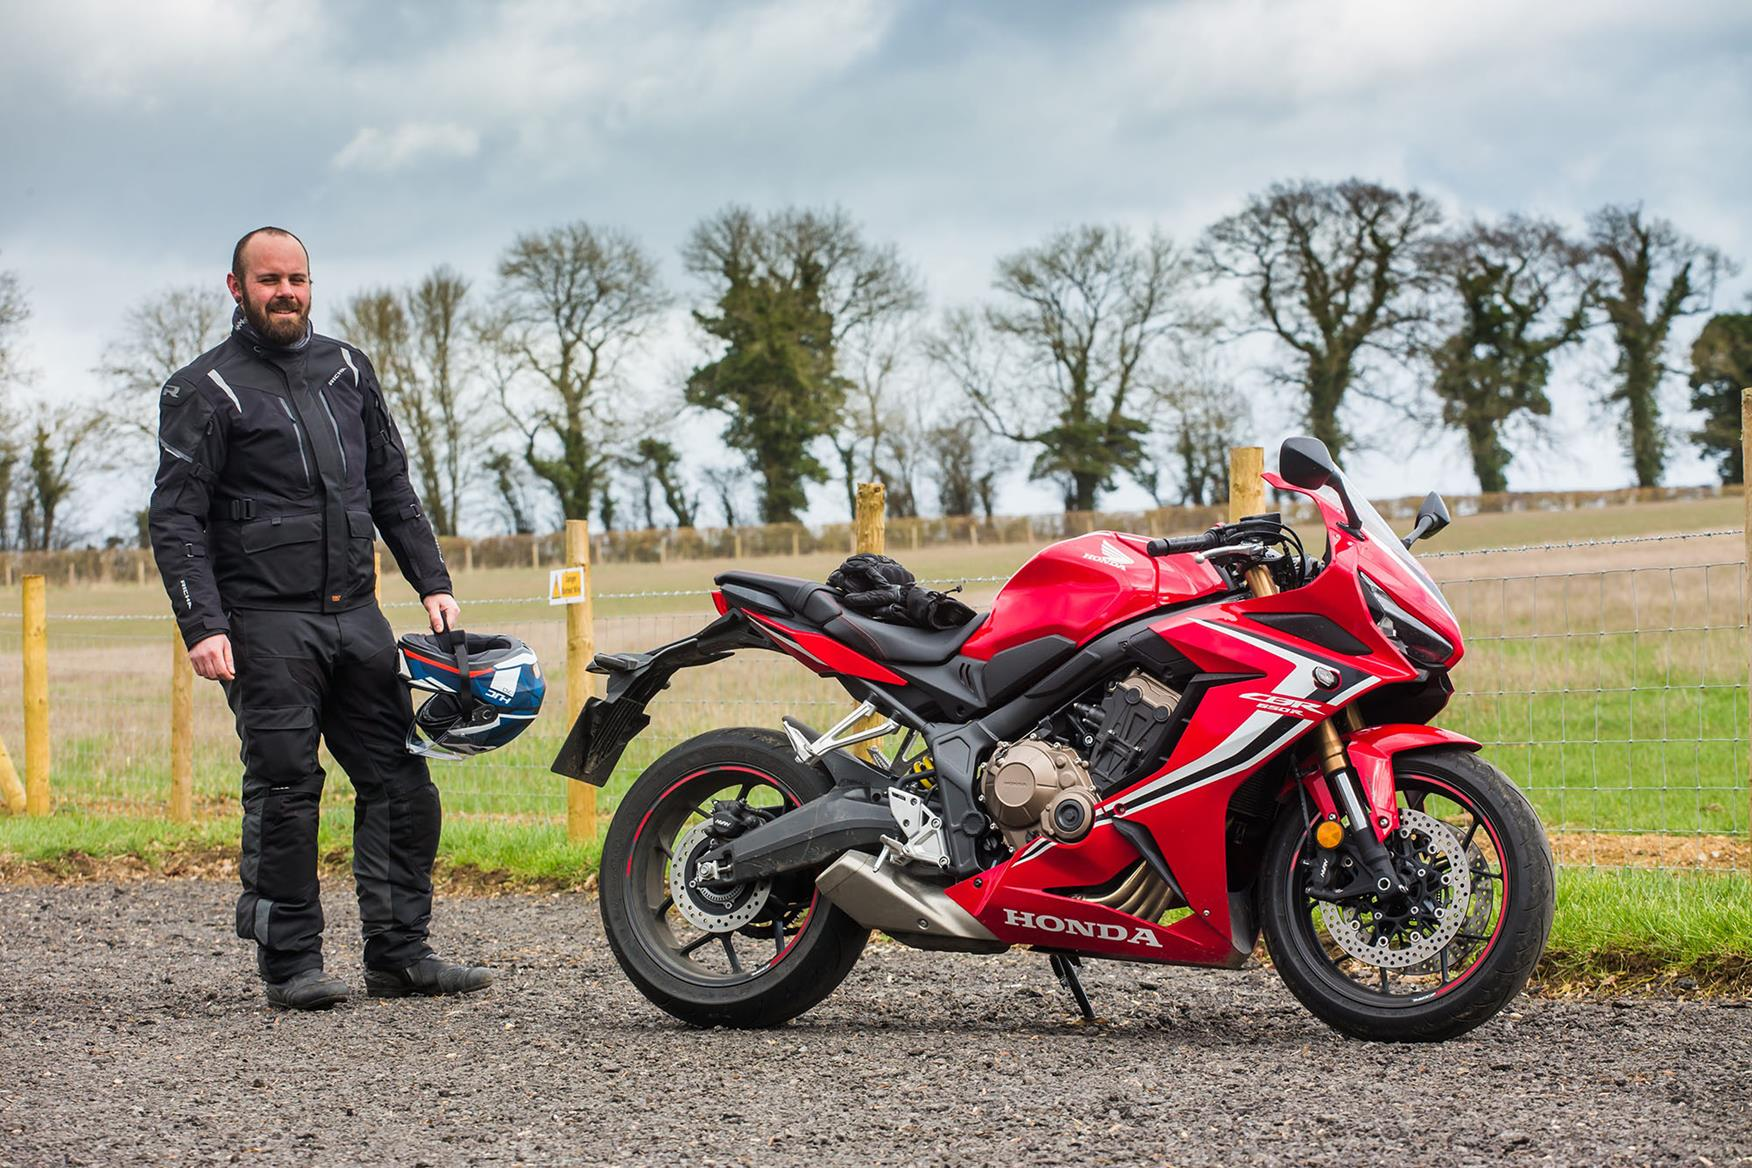 Getting to know the Honda CBR650R